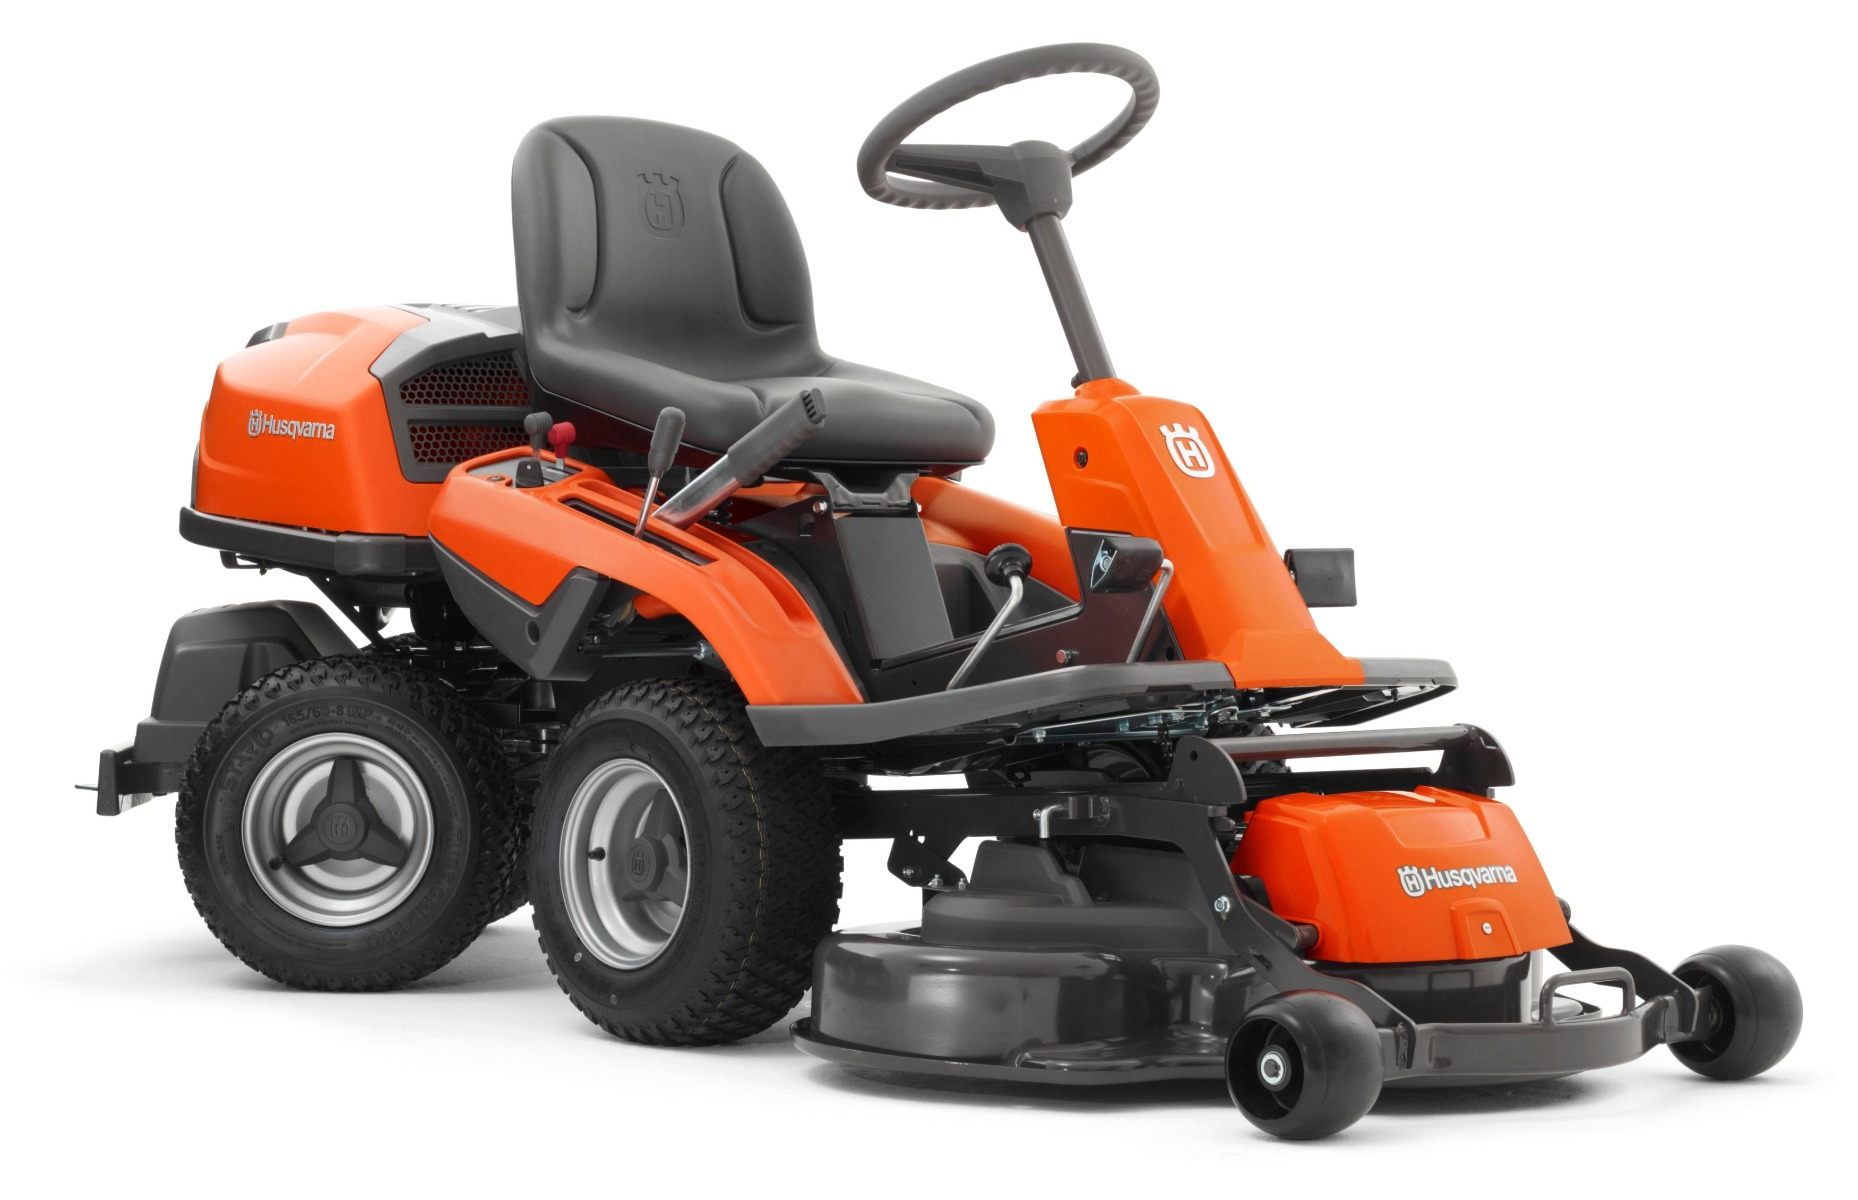 TONDEUSE CONDUCTEUR ASSIS HUSQVARNA 216 4X4 AWD